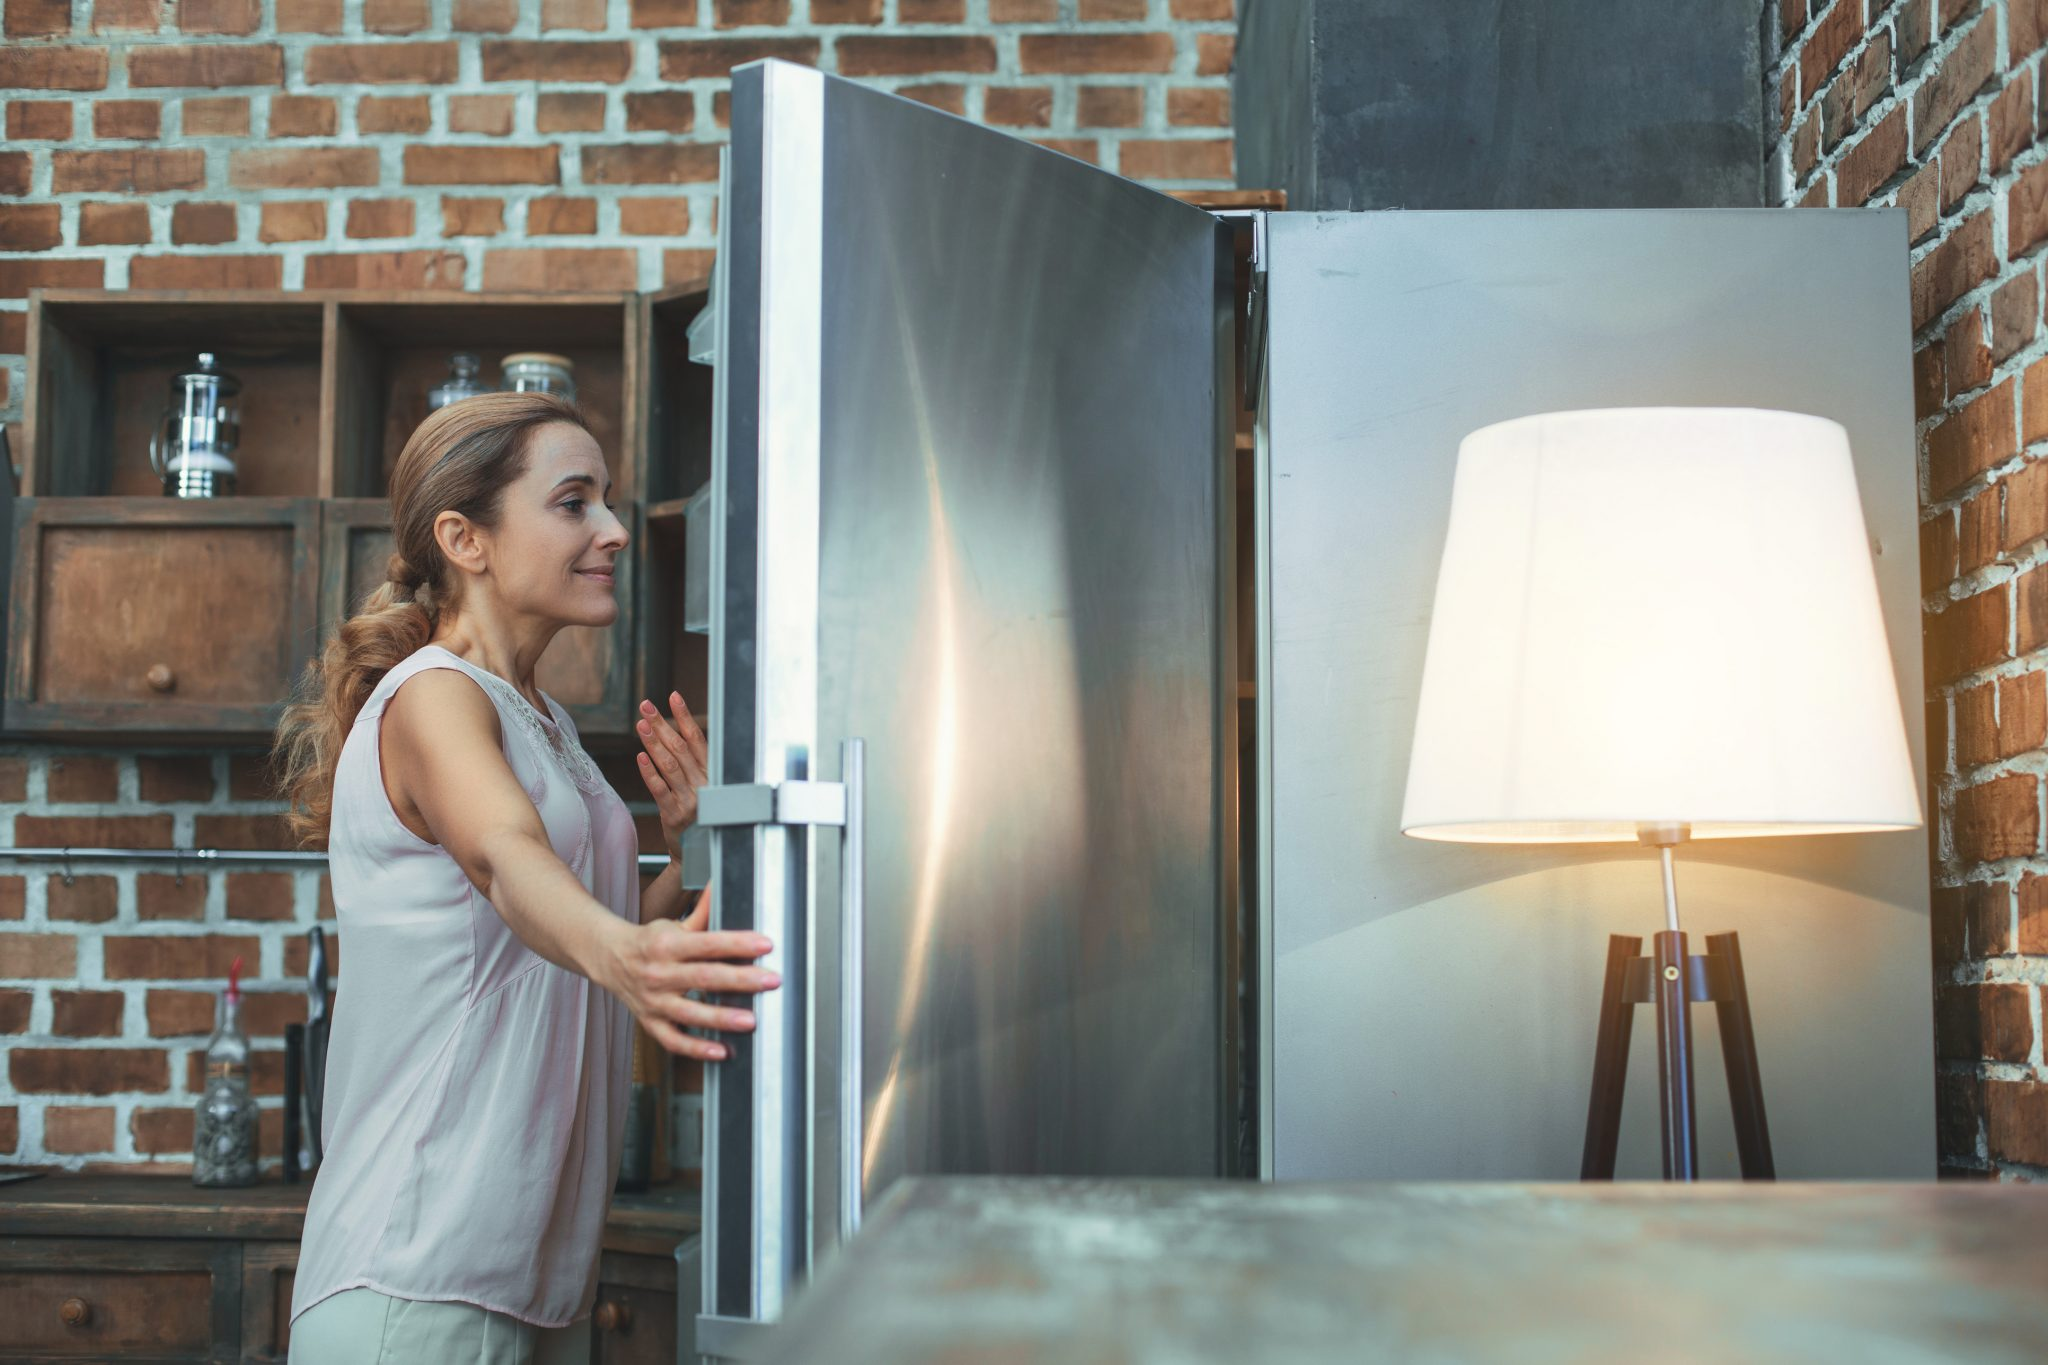 Glad mature woman cools off in front of fridge menopause hot flashes